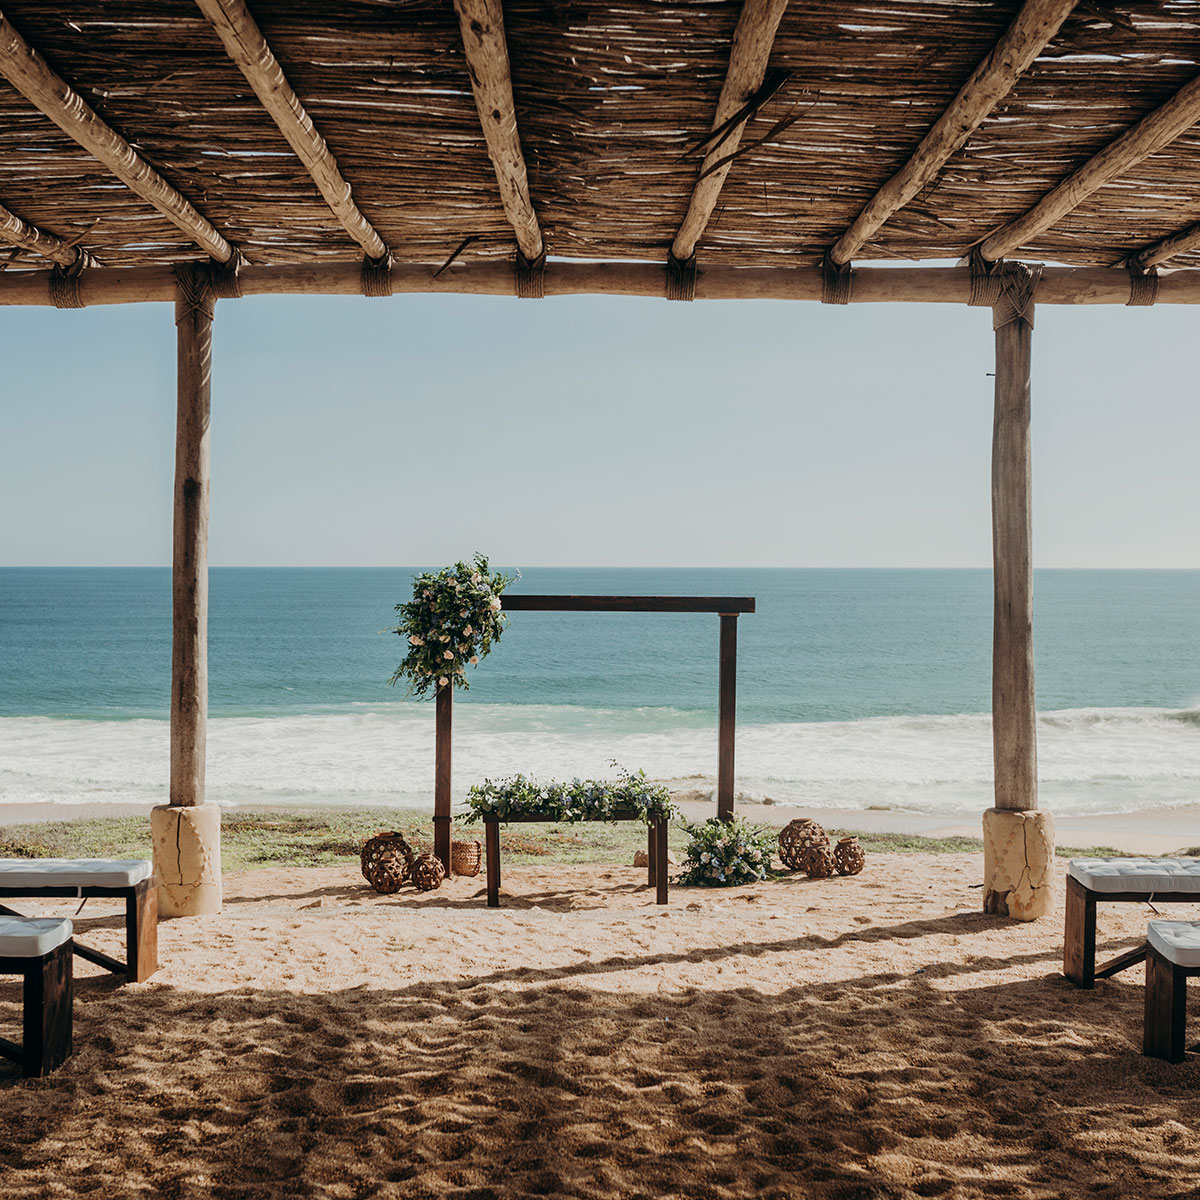 rancho shibumi wedding design by del cabo weddings photo by dennis berti event design and wedding planning 2